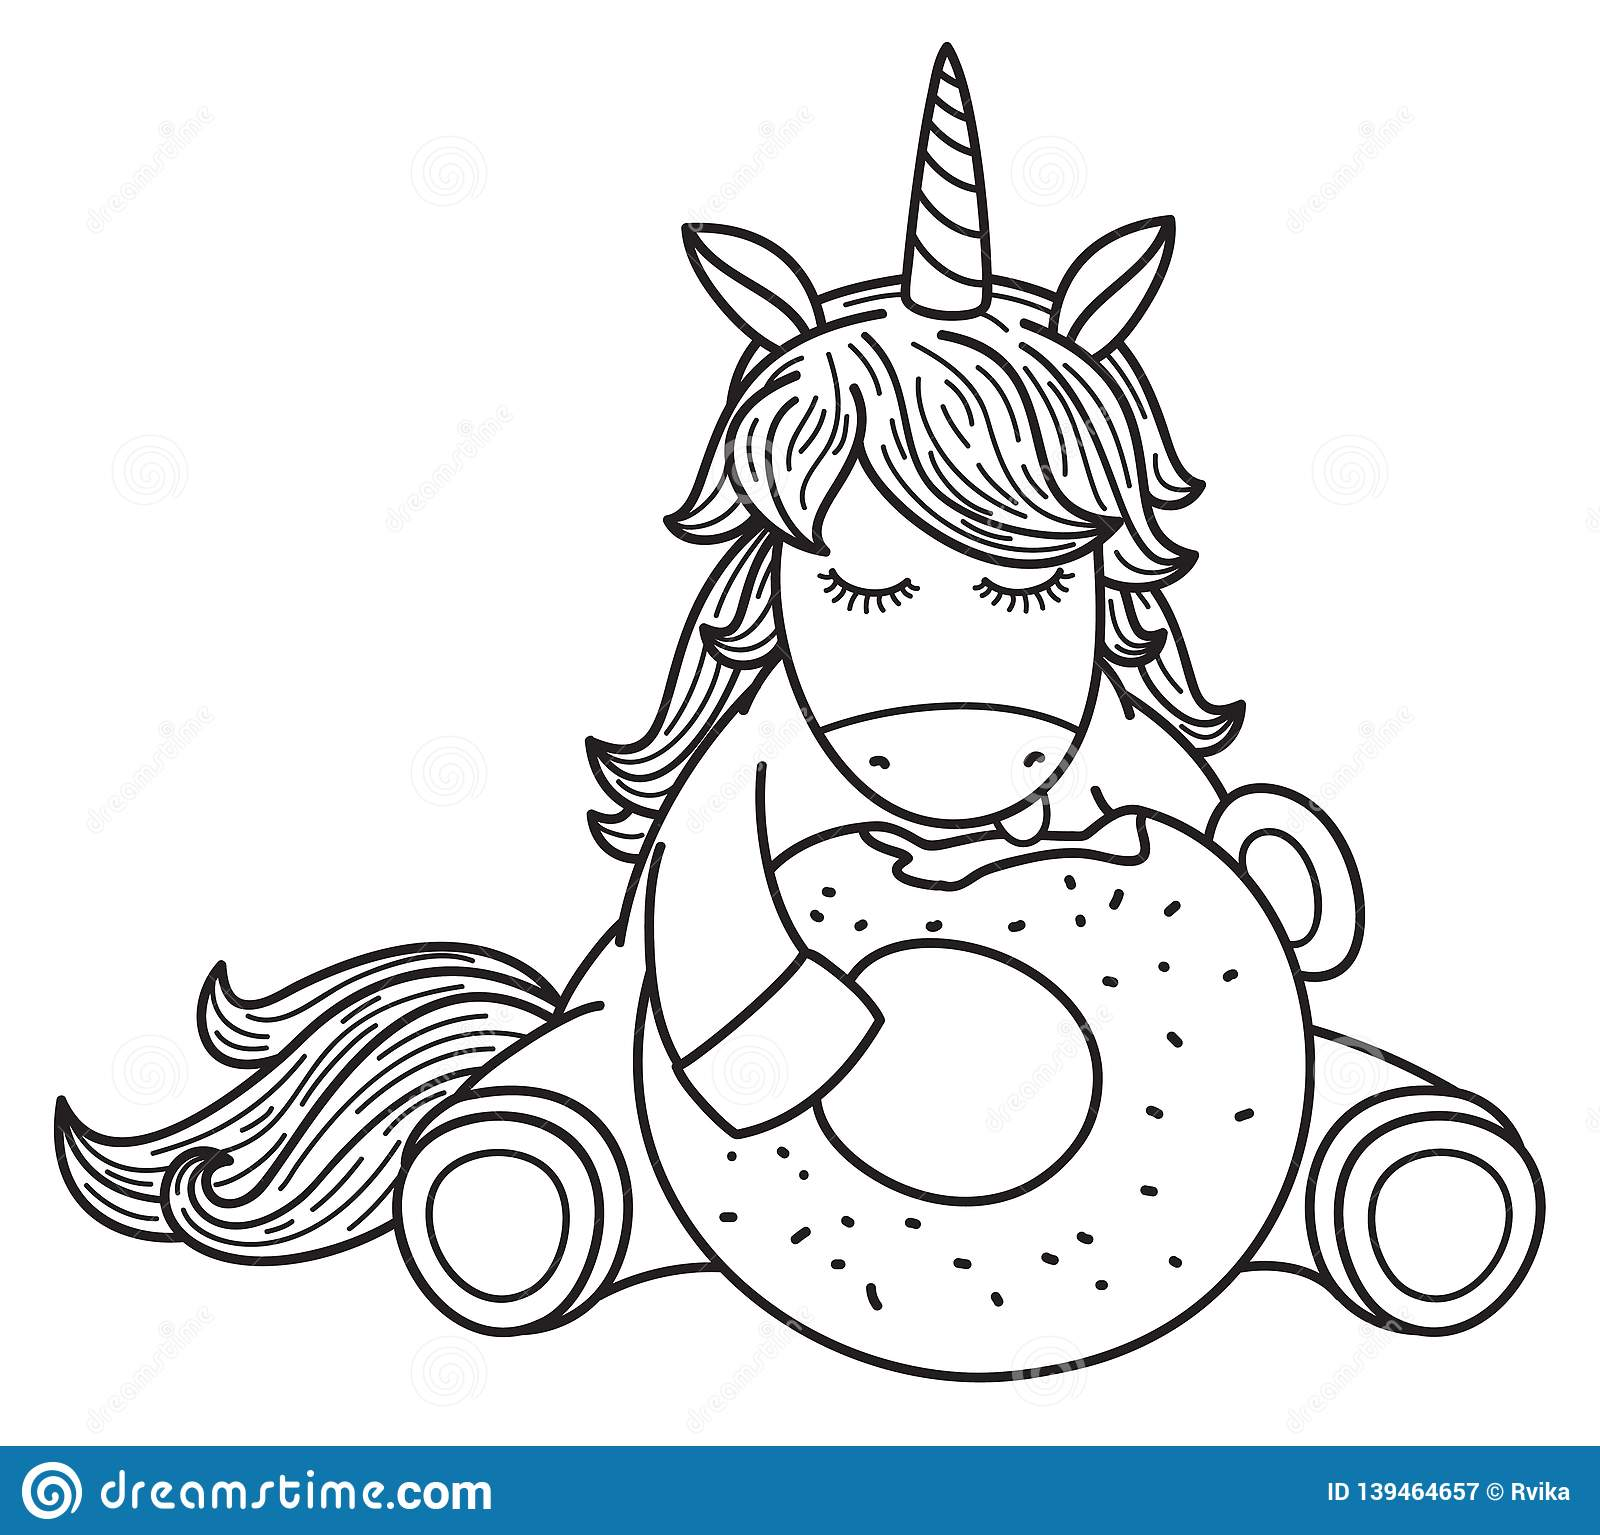 Vector Cute Unicorn Cartoon Eating Donut. Stock Vector ...